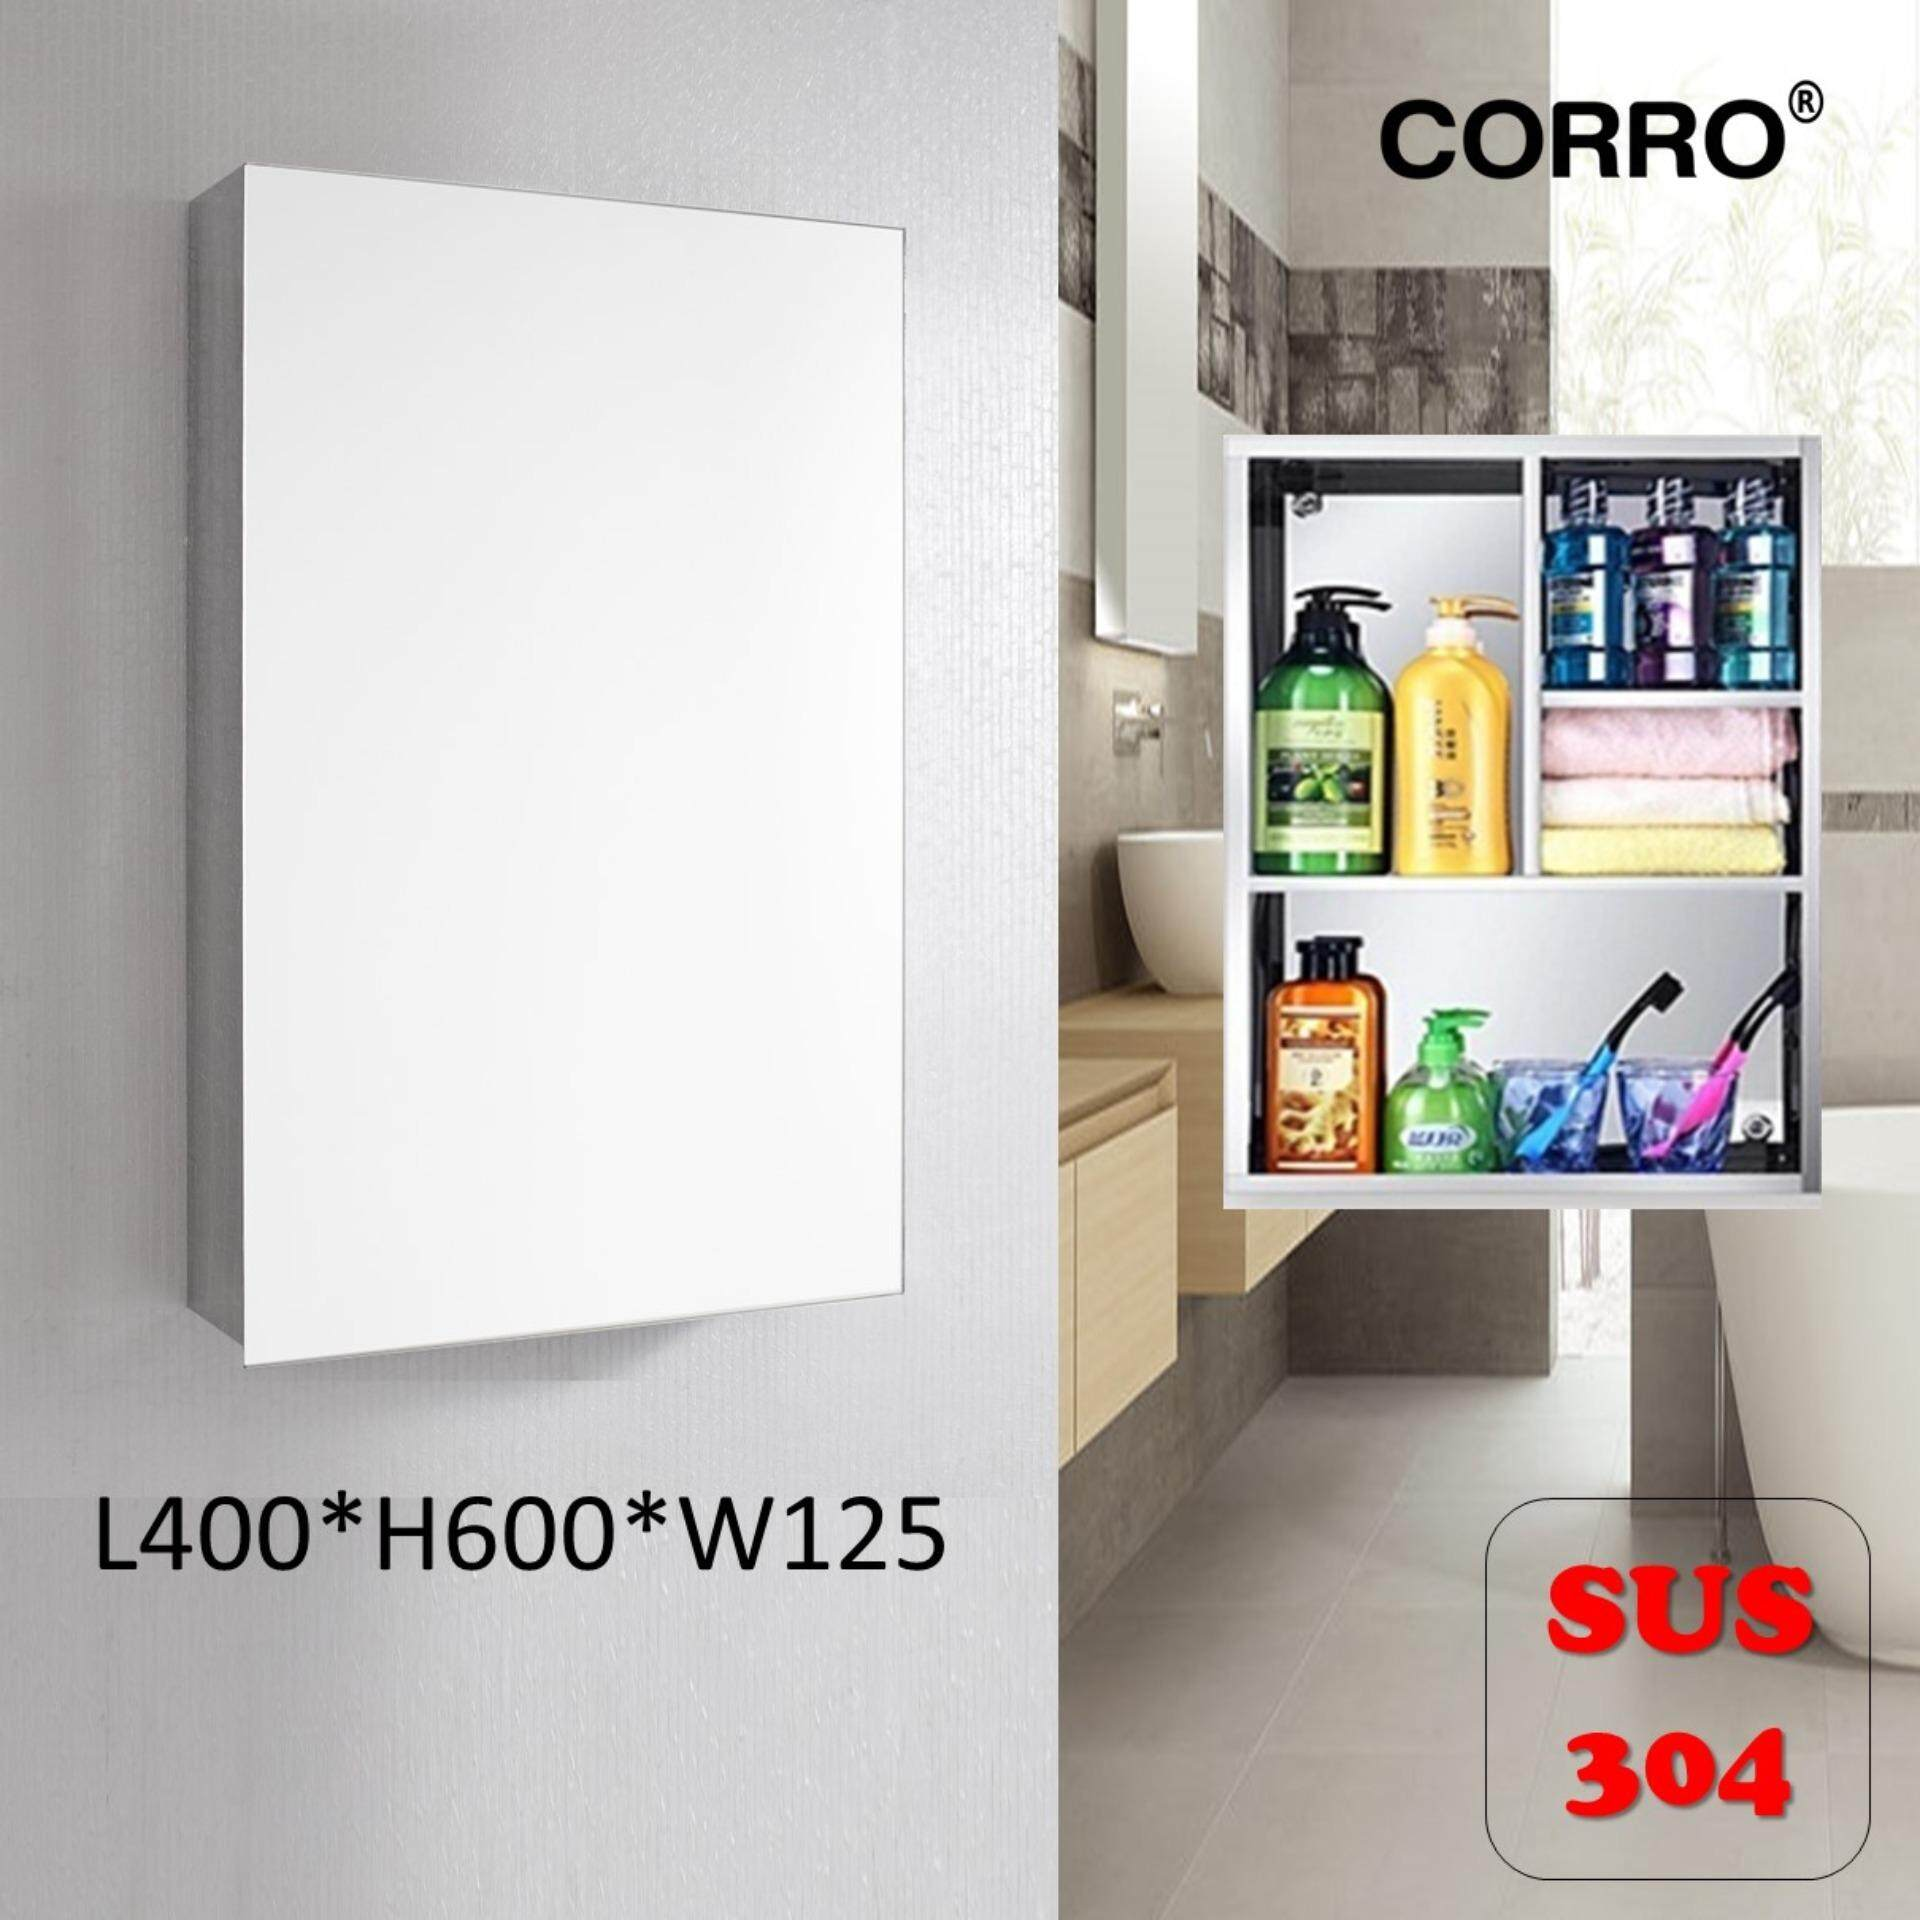 CORRO SUS304 Stainless Steel Bathroom Mirror Cabinet-(400x600mm)